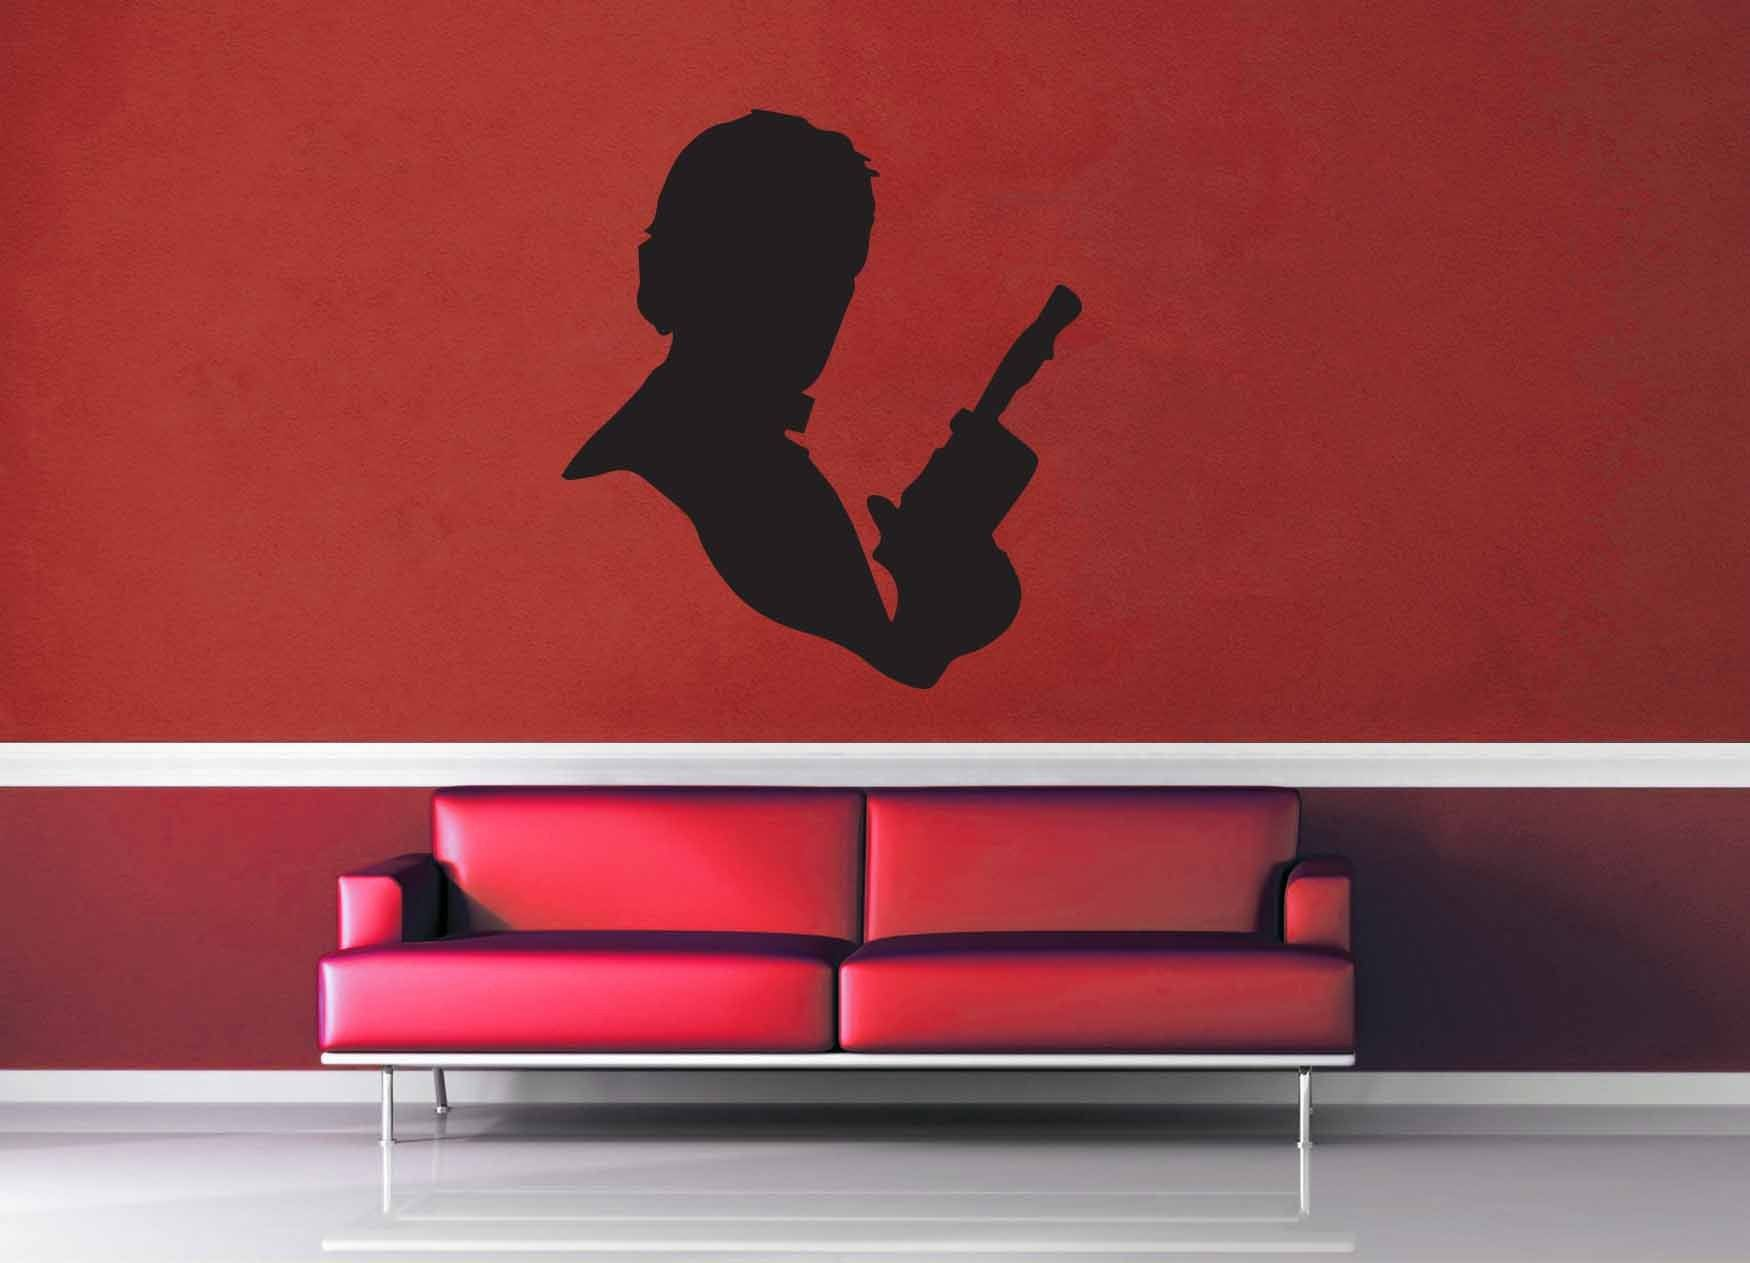 Han Solo Silhouette - Star Wars - Wall Decal - No 2